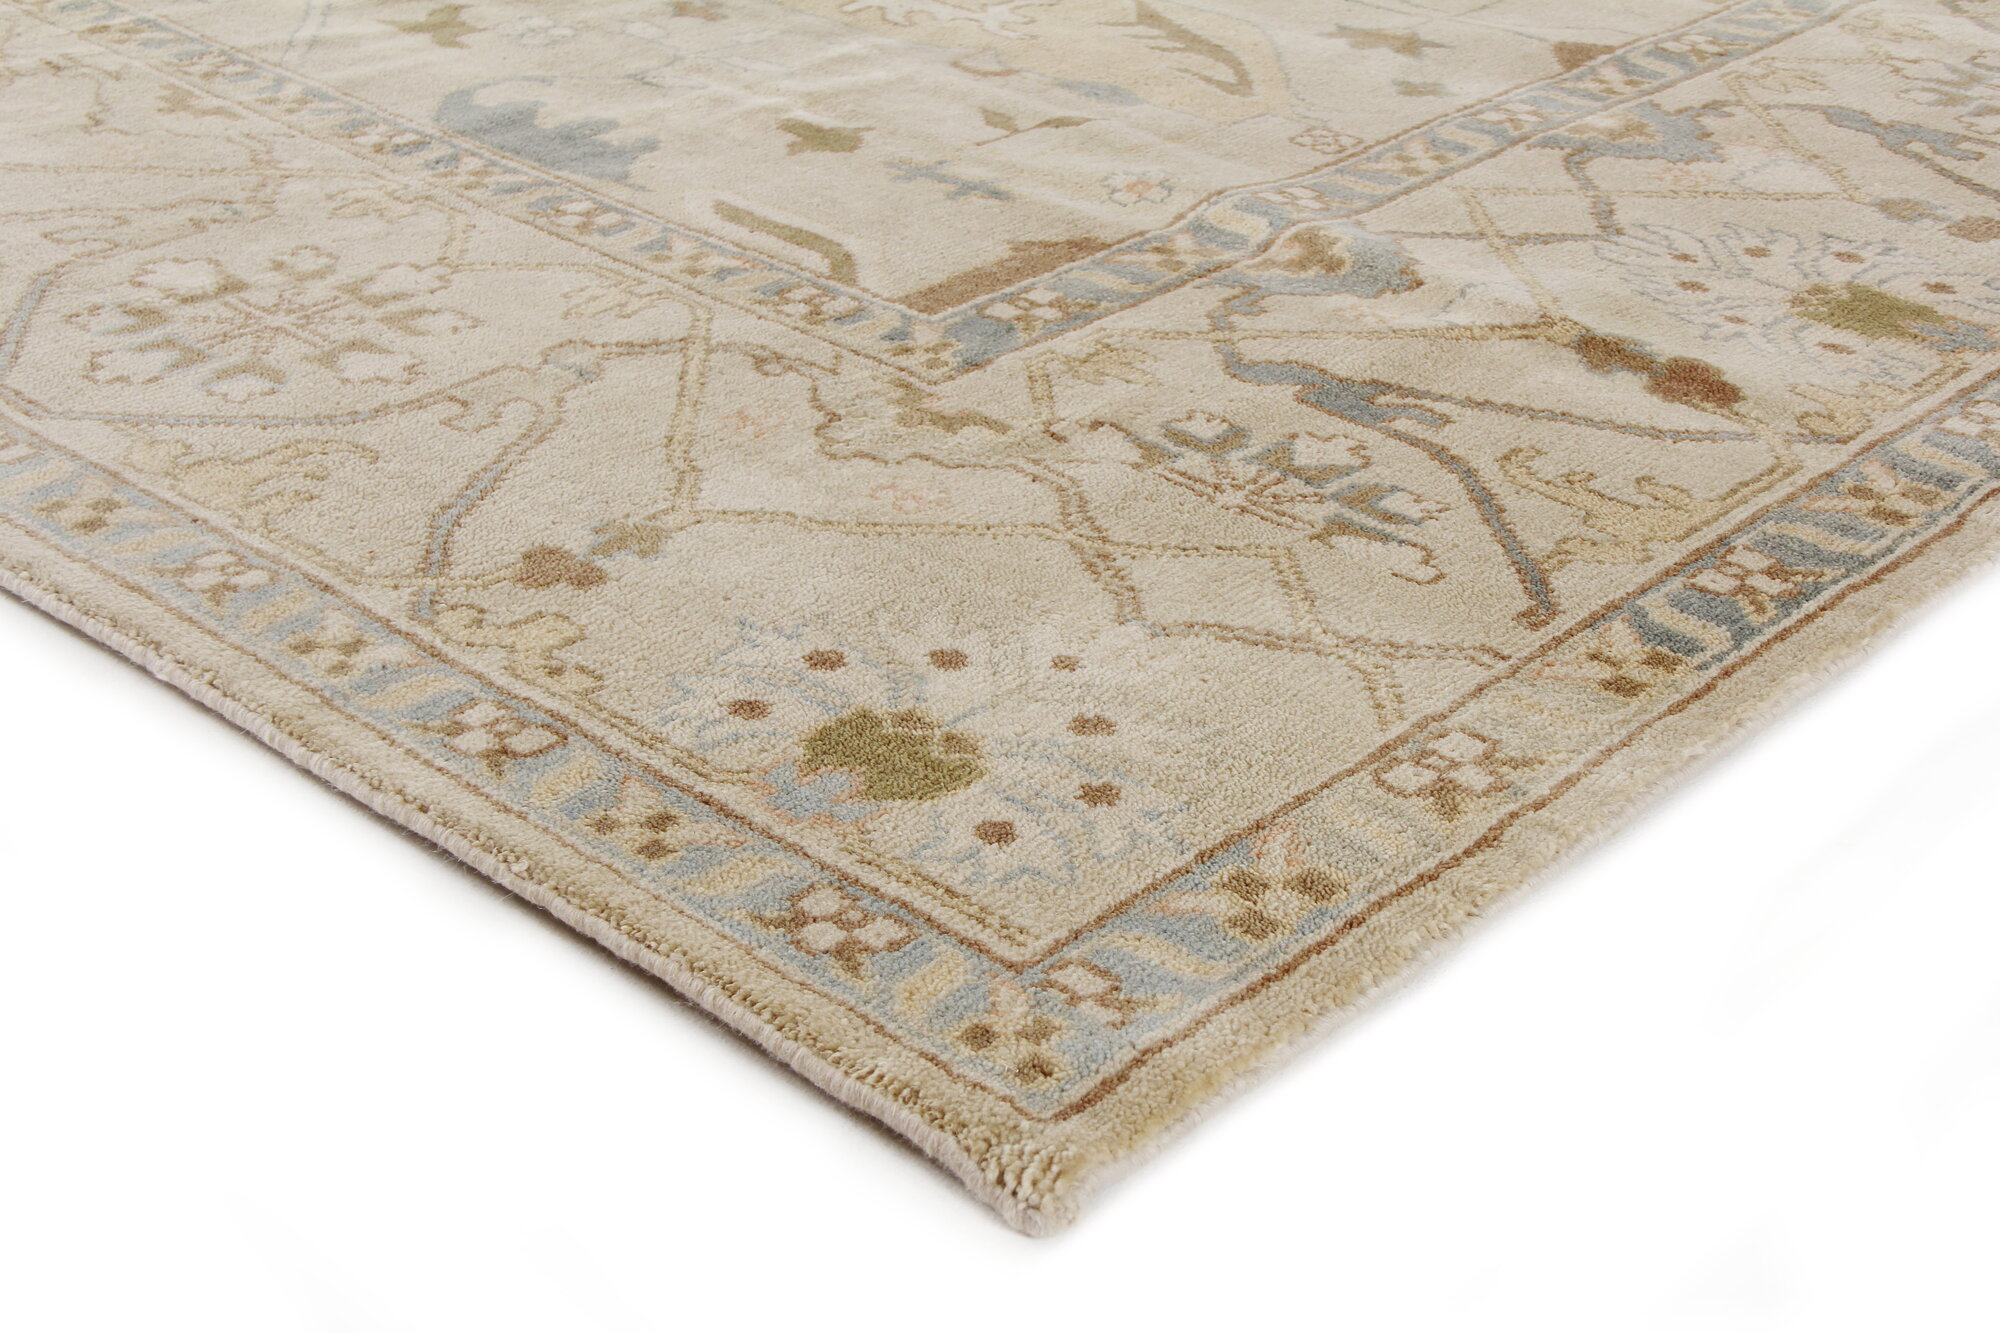 Exquisite Rugs Oushak Hand Knotted Wool Cream Area